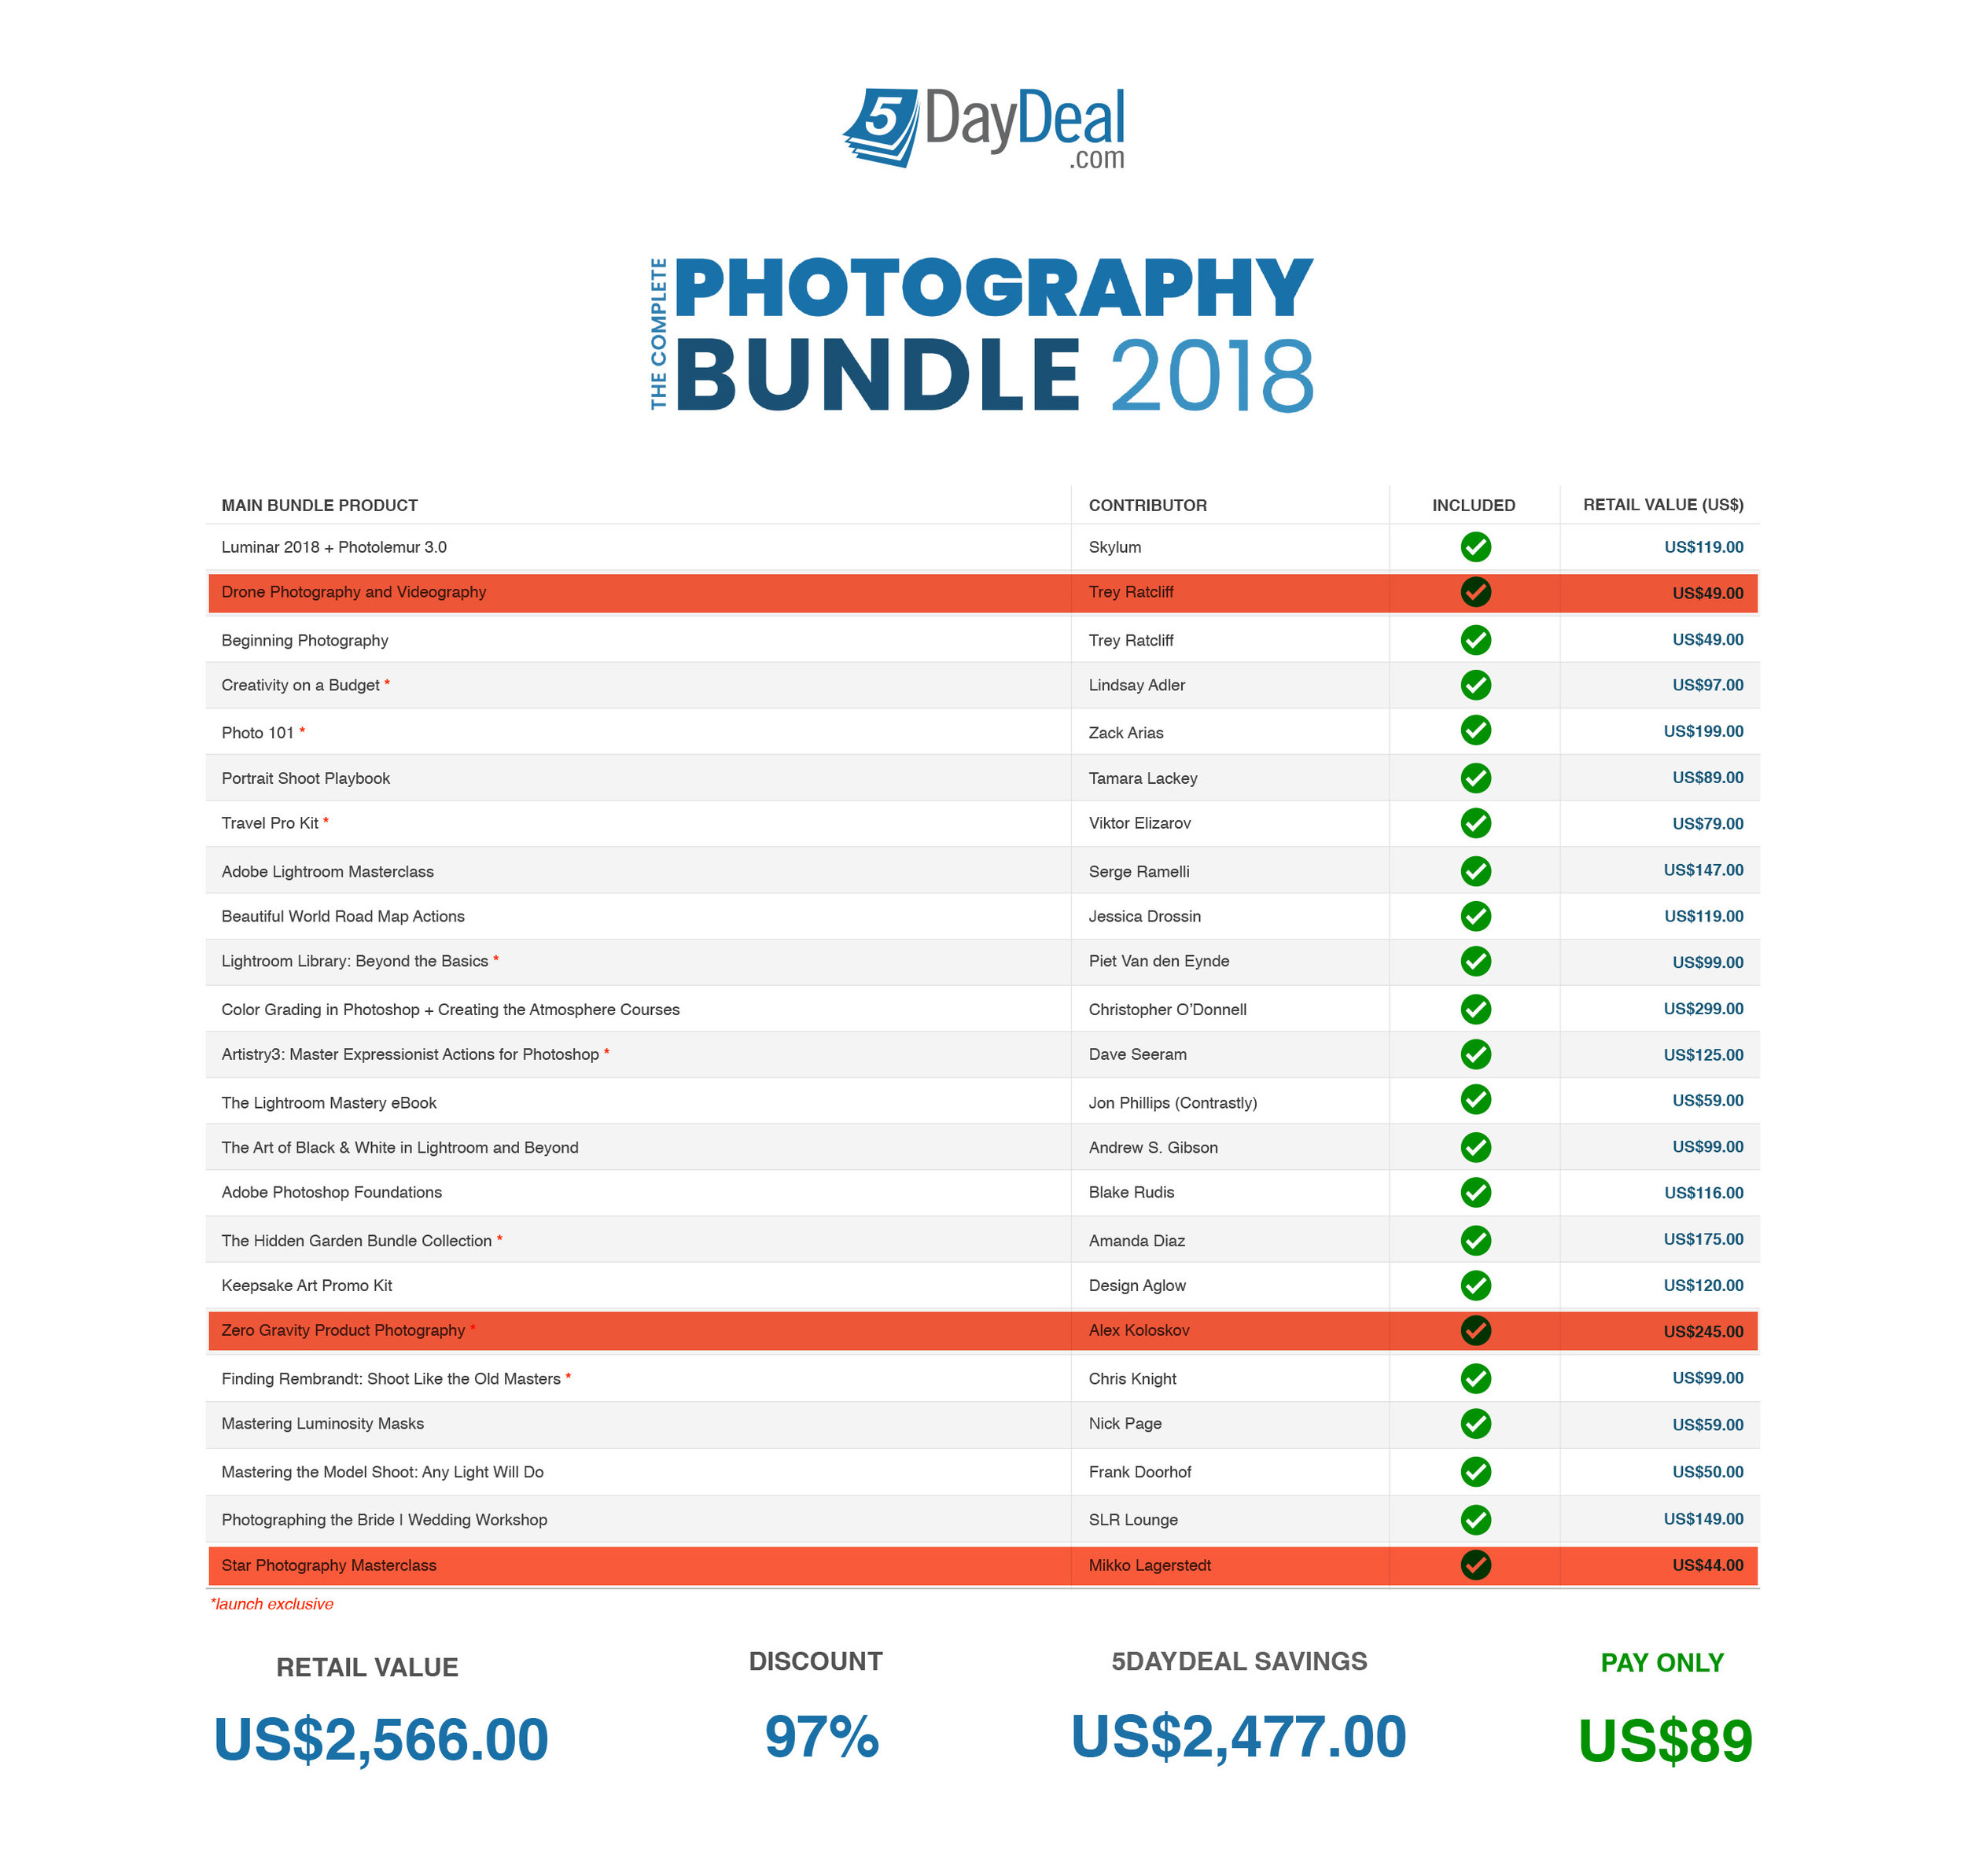 Copy of Copy of 5DayDeal-PB2018-ProductList_Sep27